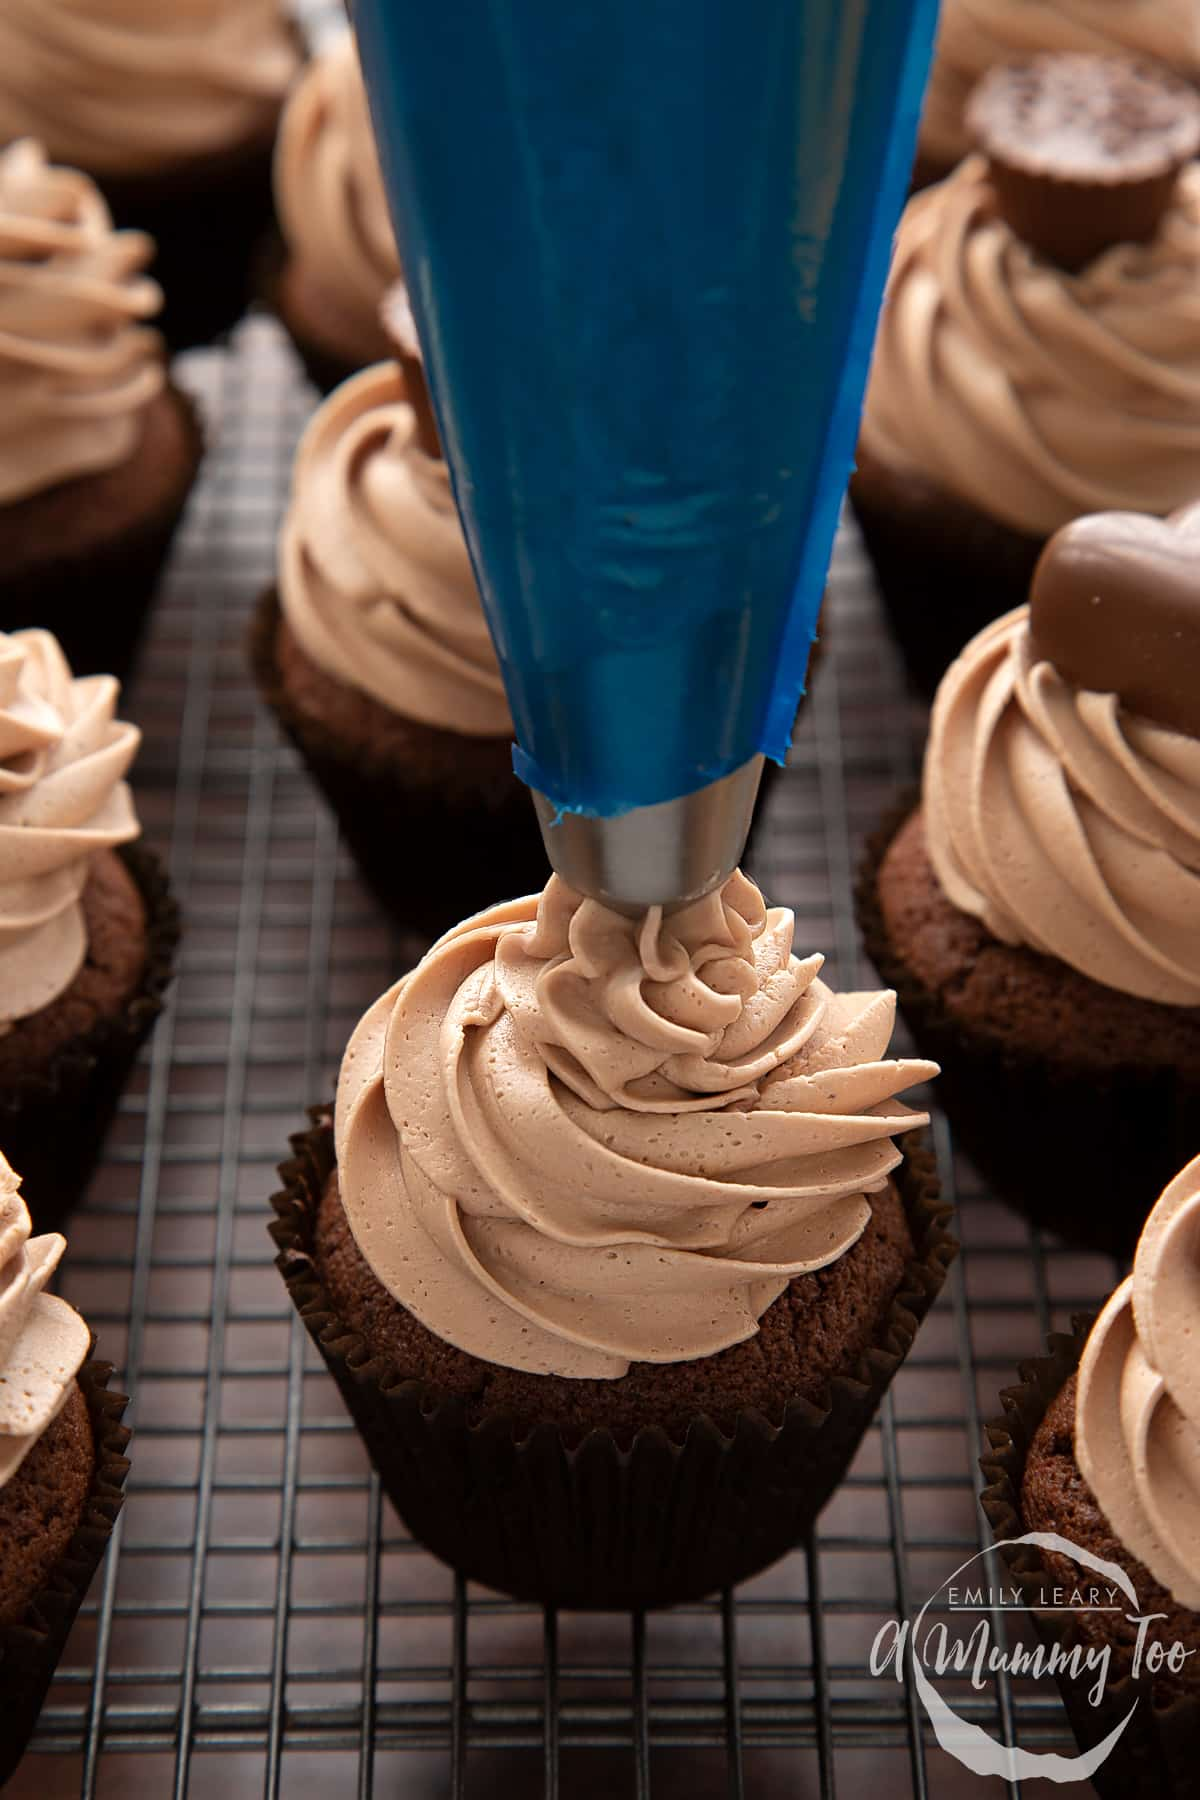 Baileys icing being piped onto a chocolate cupcake using a blue piping bag with a metal star nozzle.